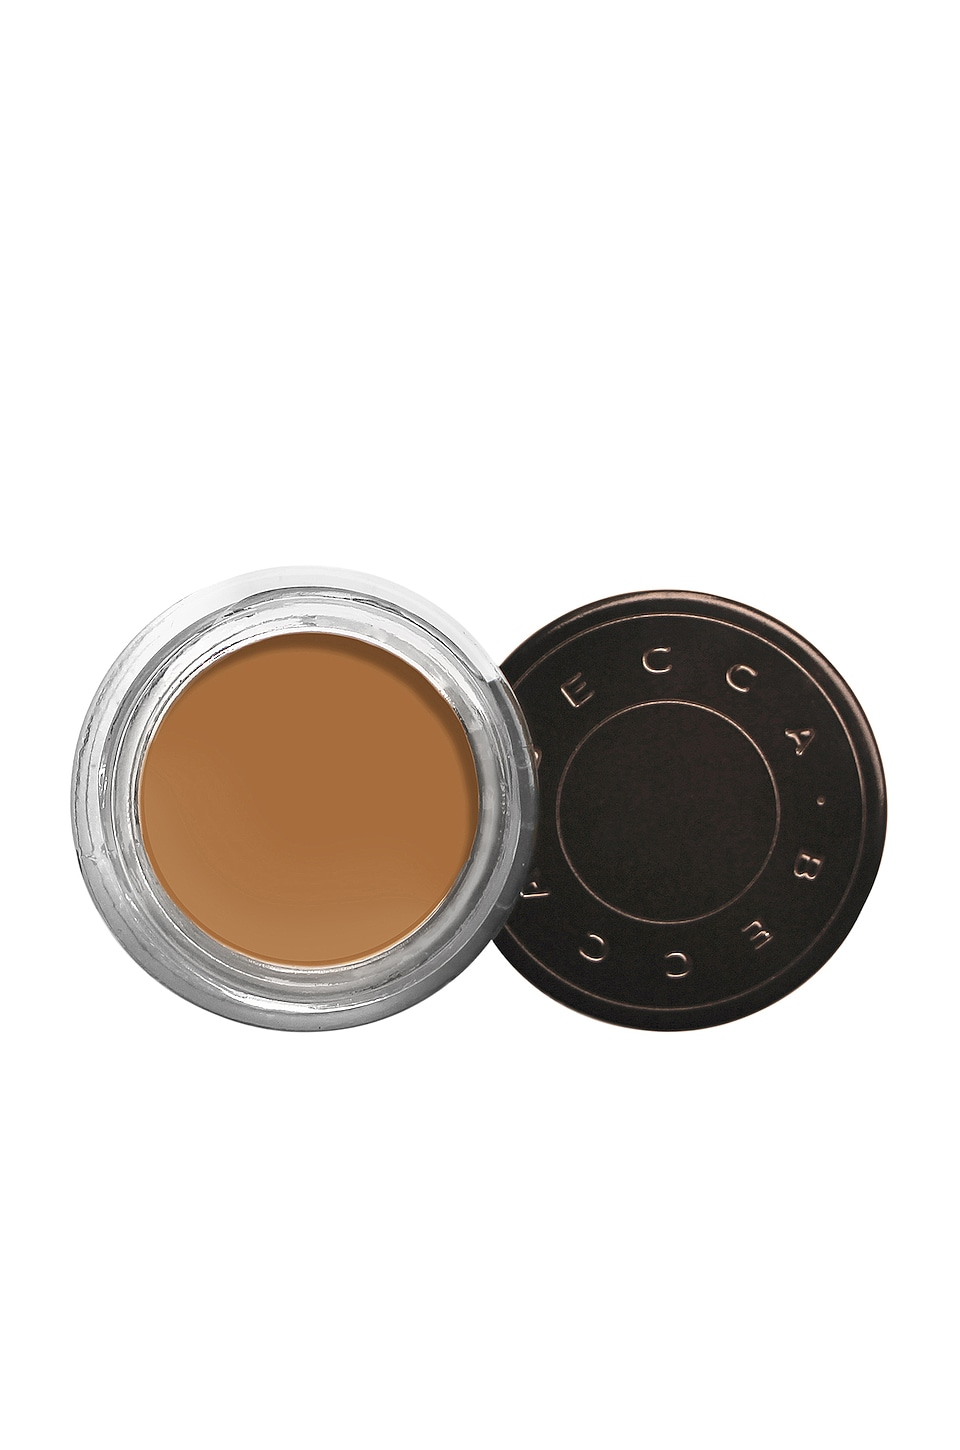 BECCA Ultimate Coverage Concealing Creme in Syrup